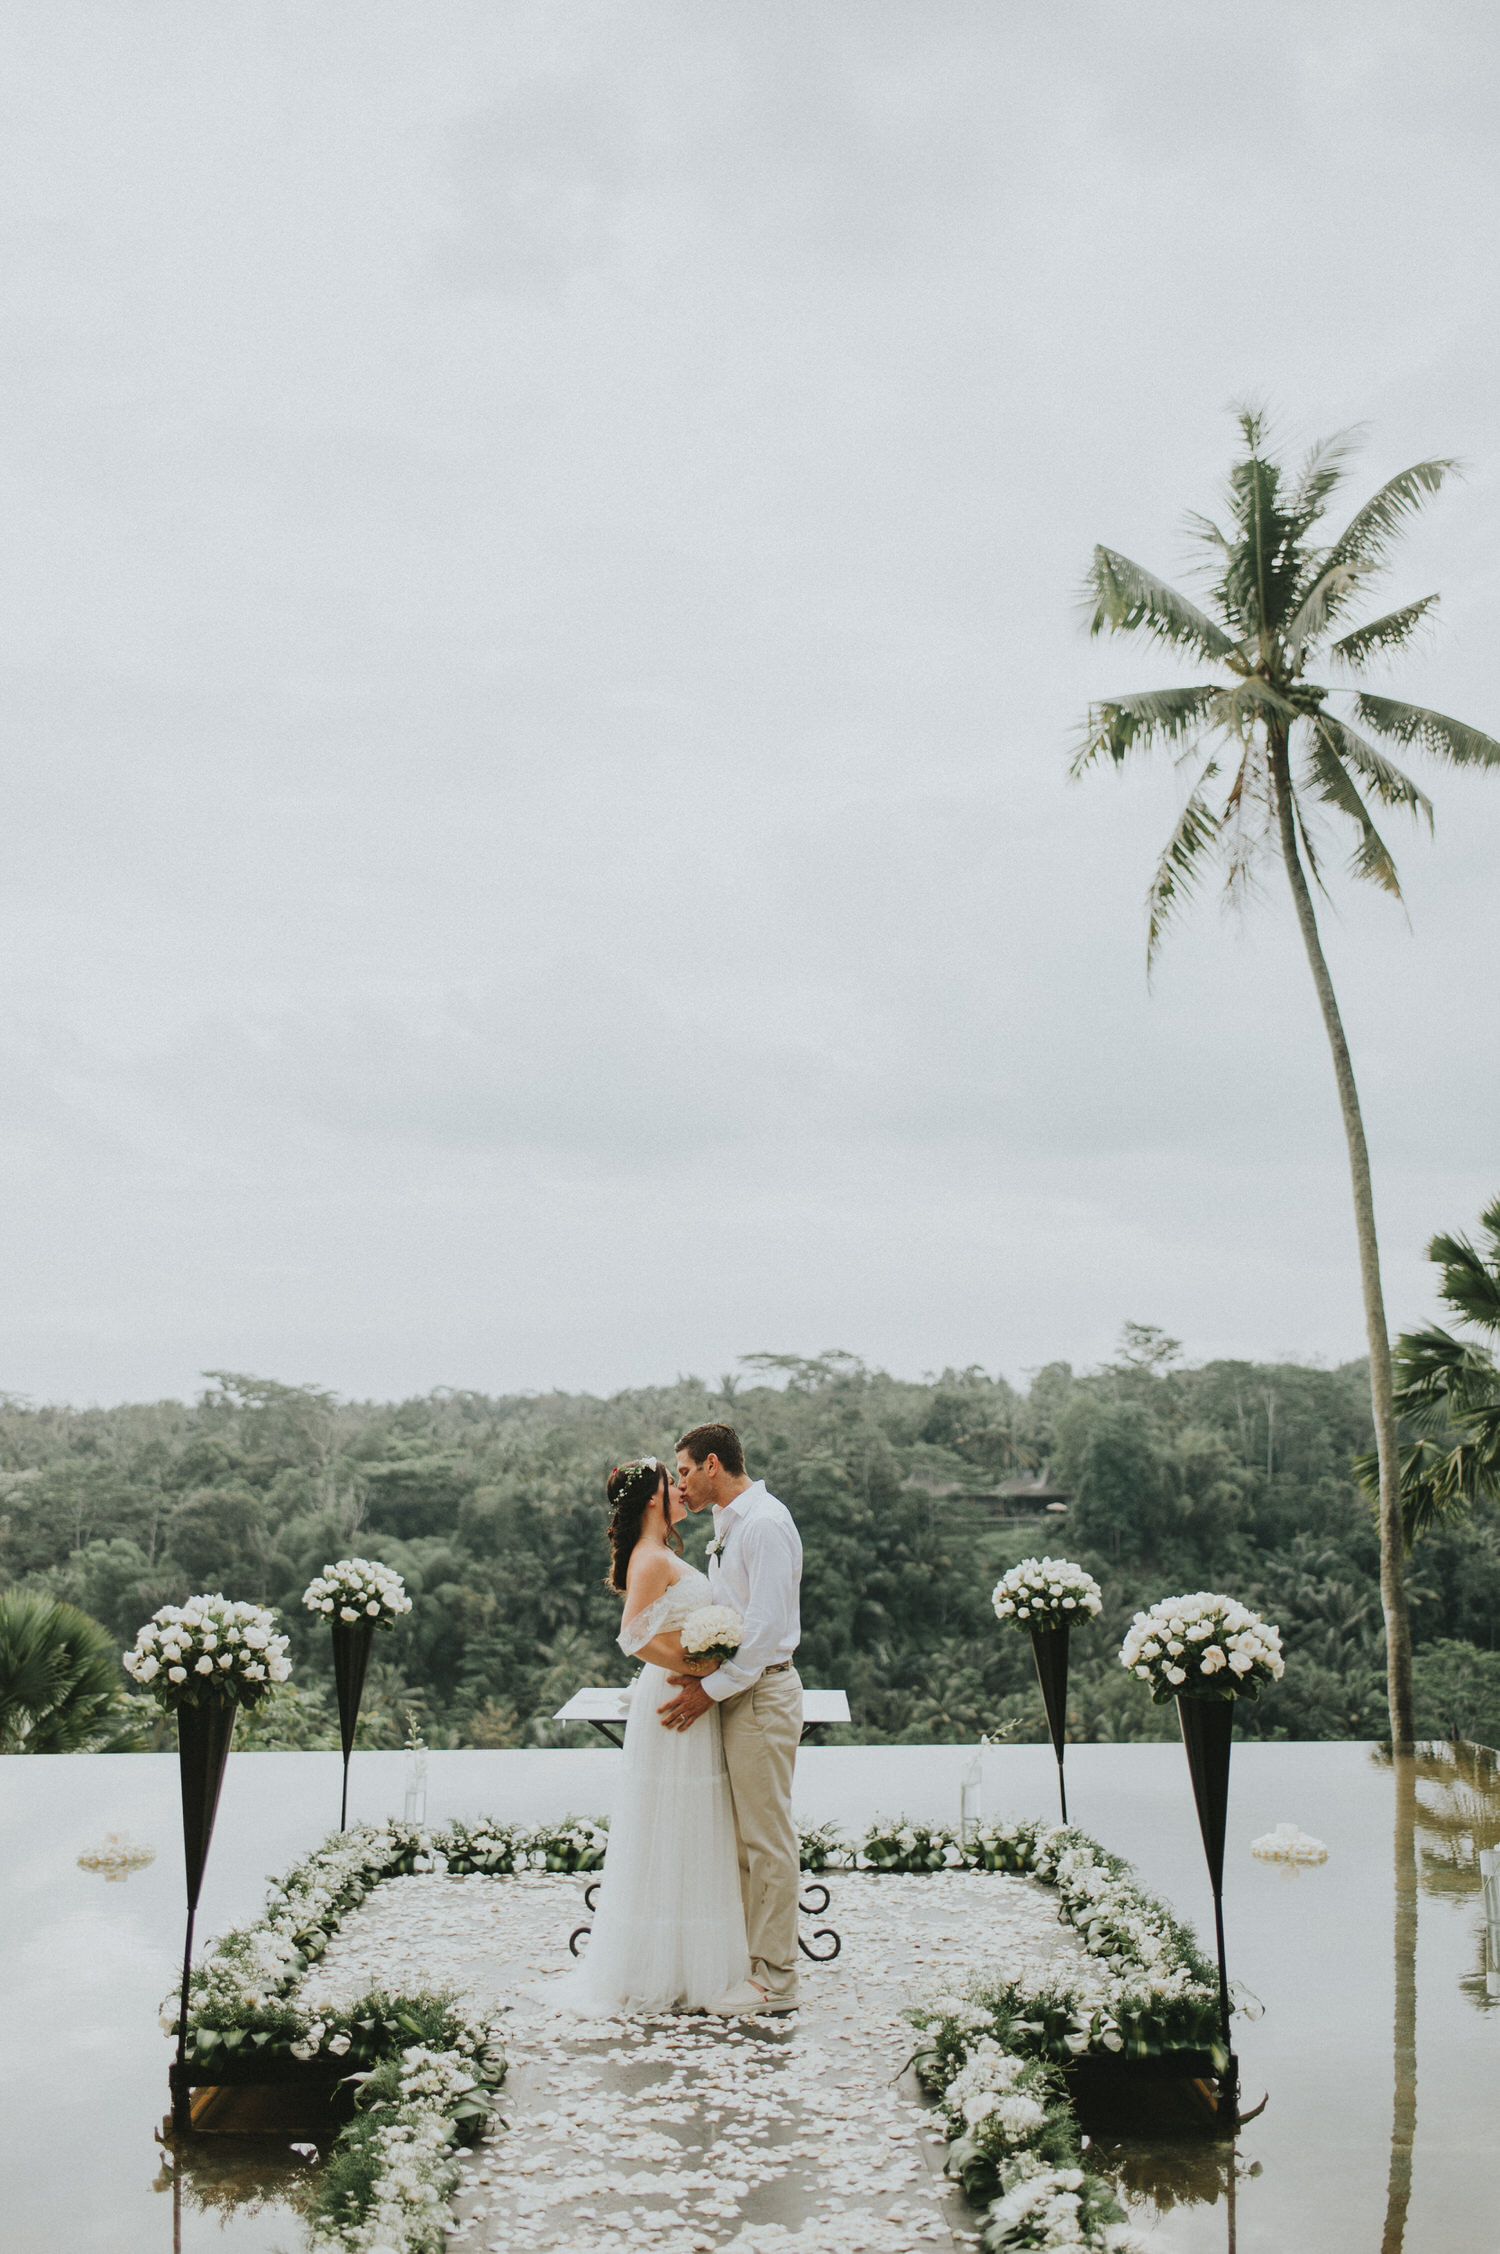 bali wedding - elopement - ubud wedding - diktatphotography - olga + Jason - 57